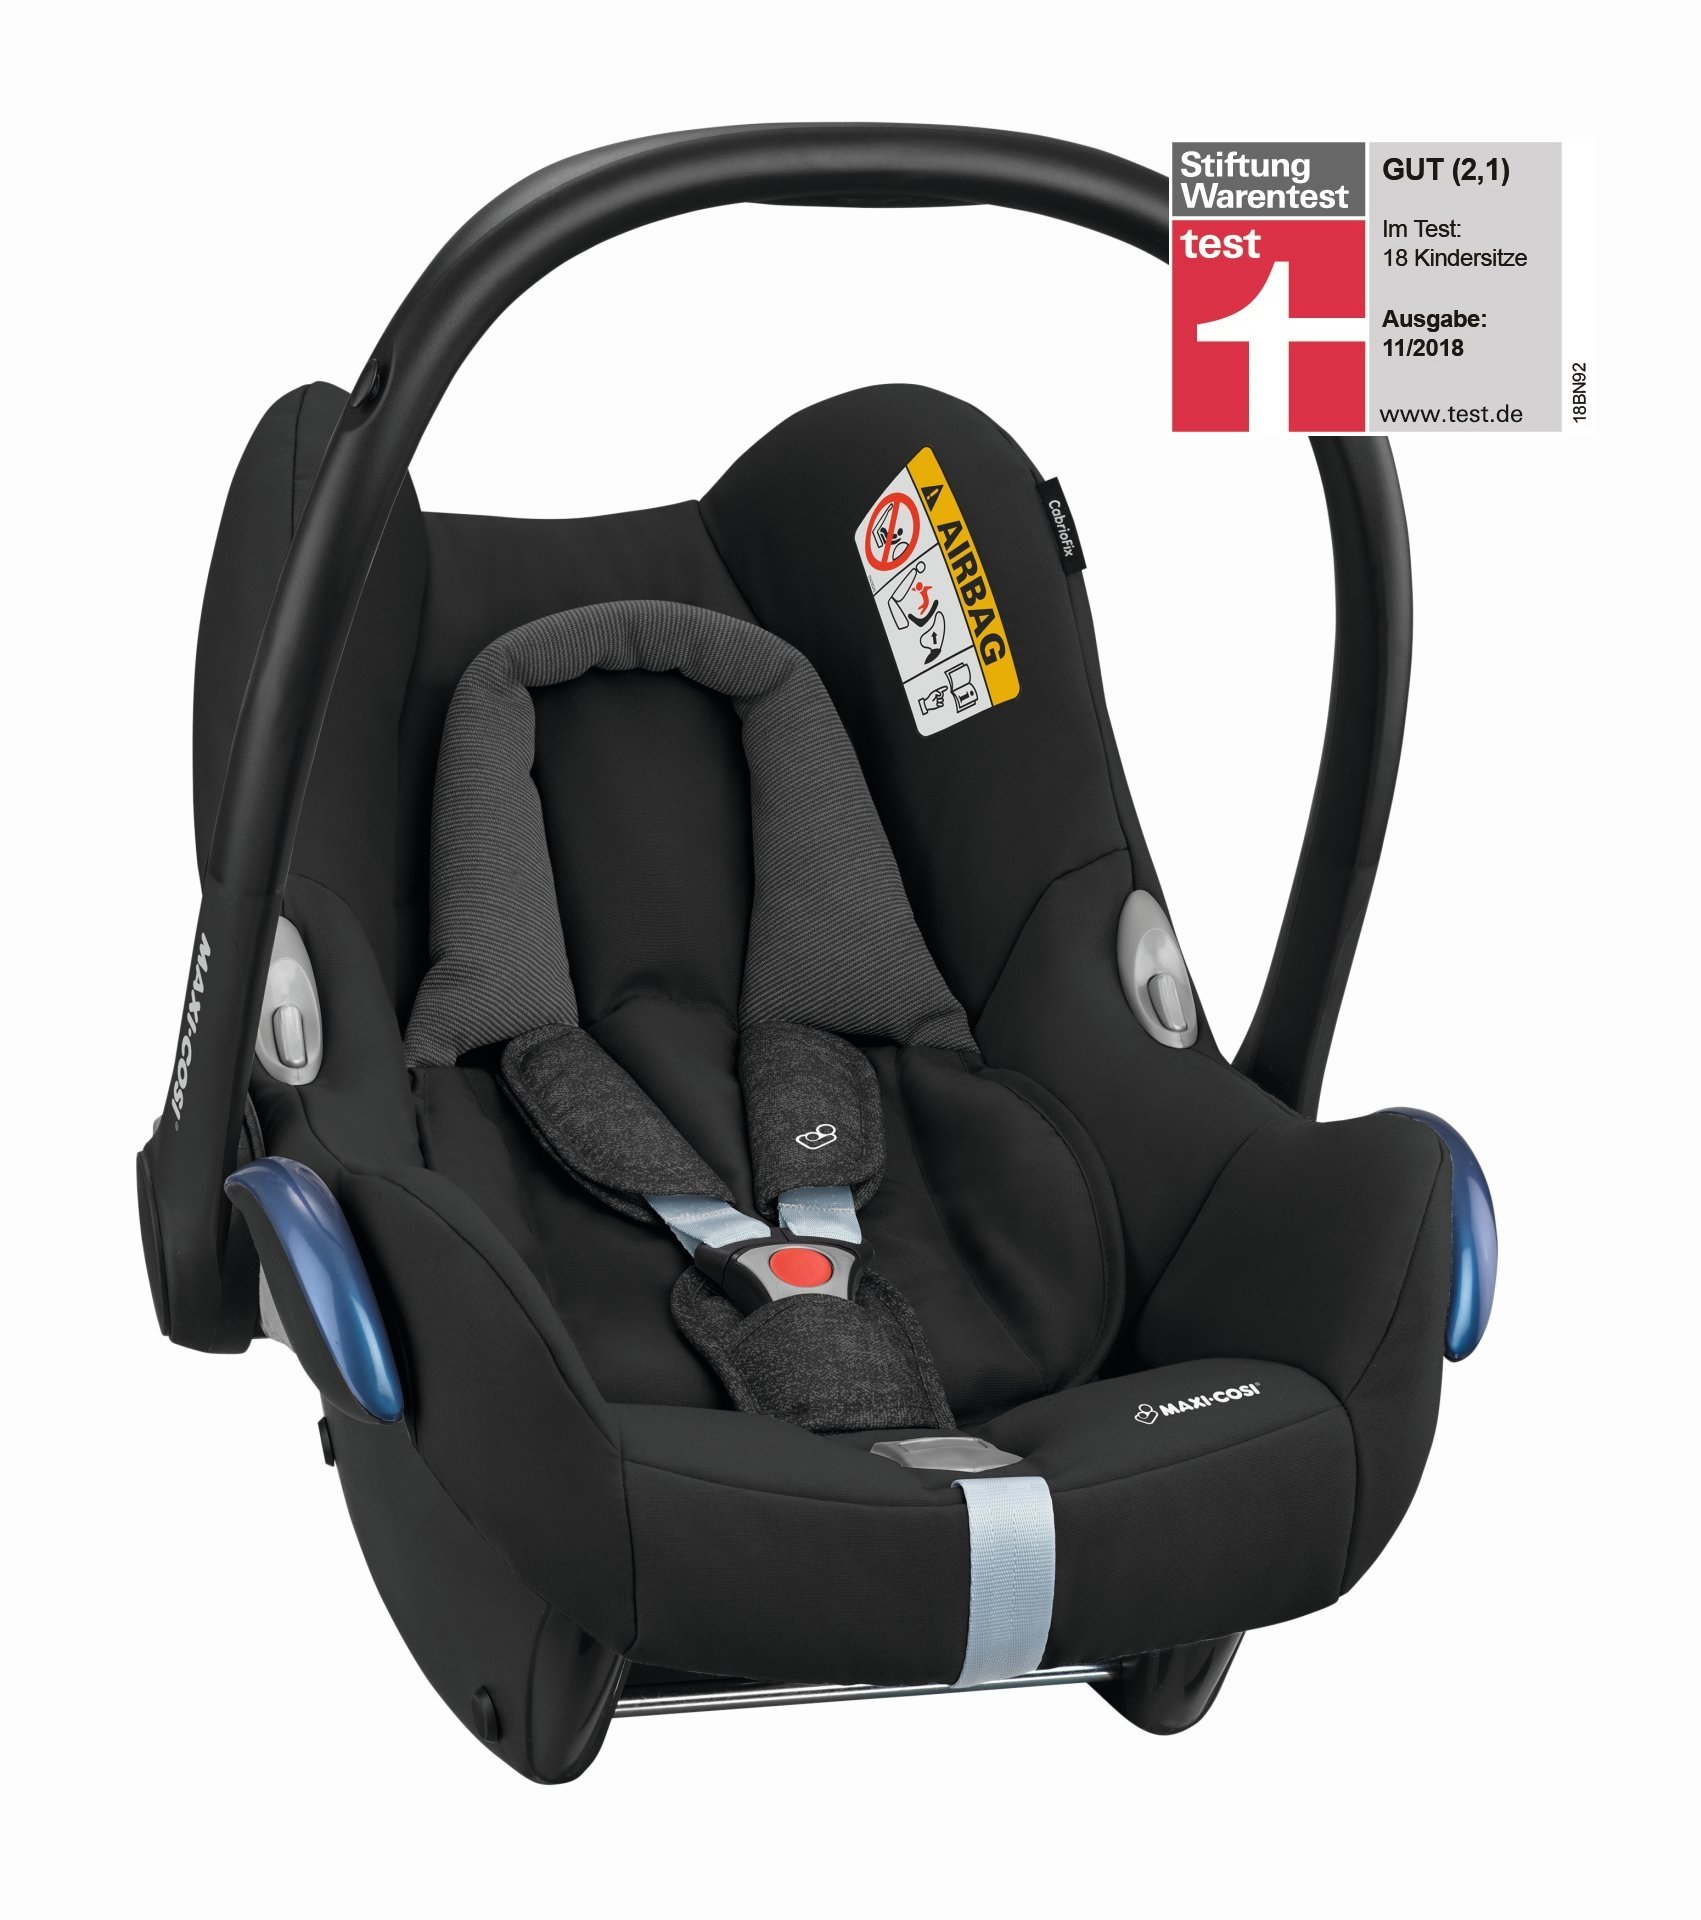 maxi cosi infant carrier cabriofix 2018 nomad black buy at kidsroom car seats. Black Bedroom Furniture Sets. Home Design Ideas